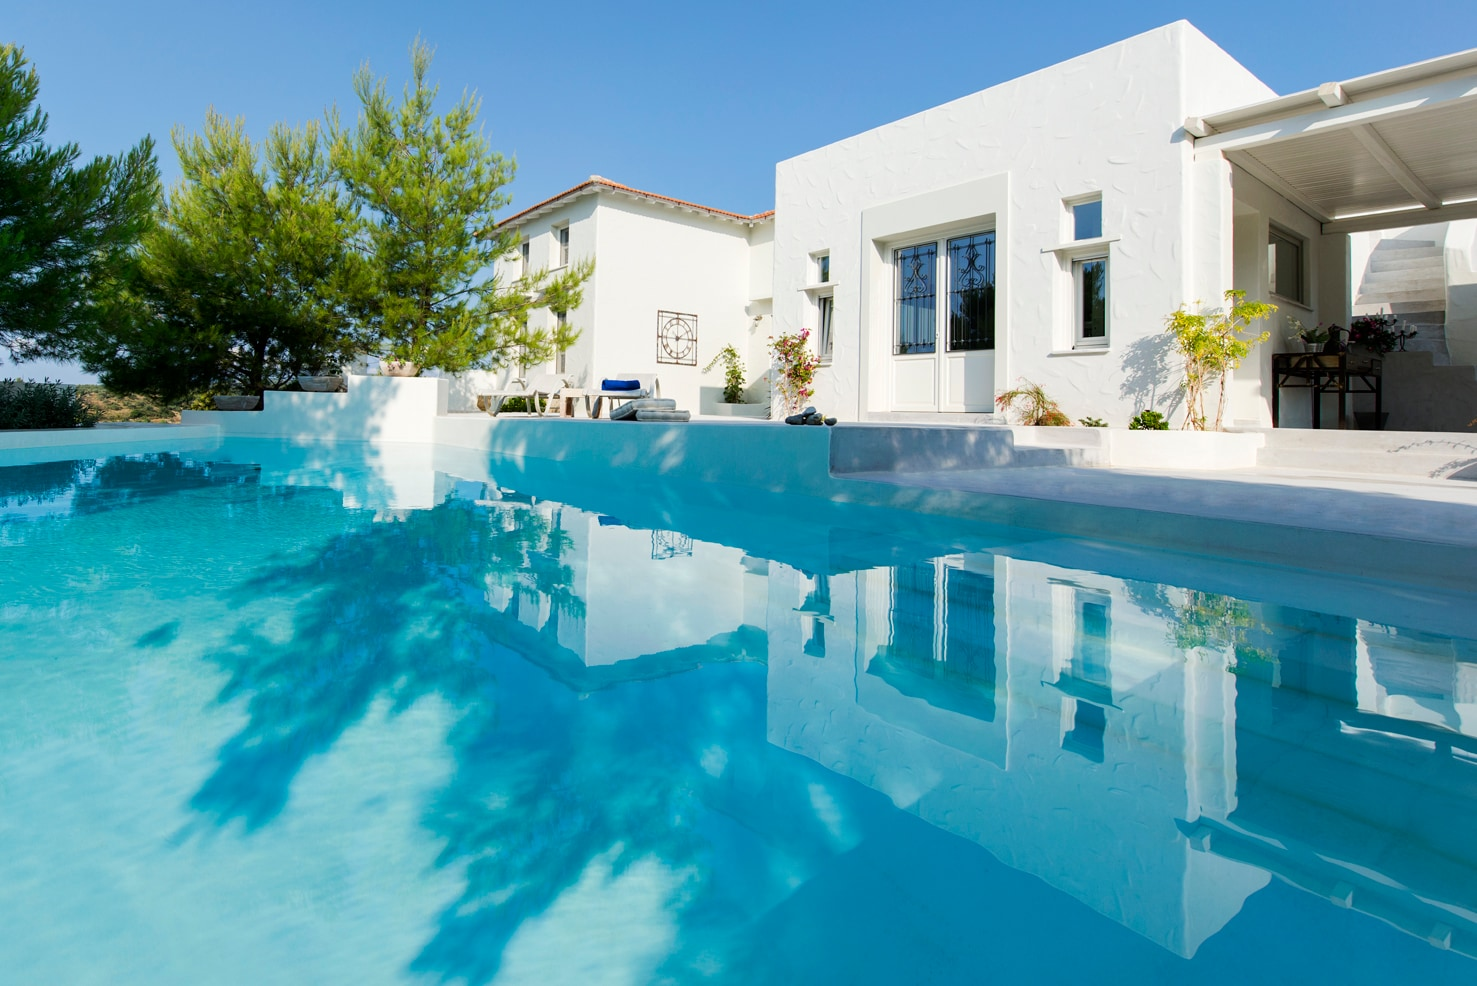 Property Image 1 - Stunning Luxury Villa with Private Pool